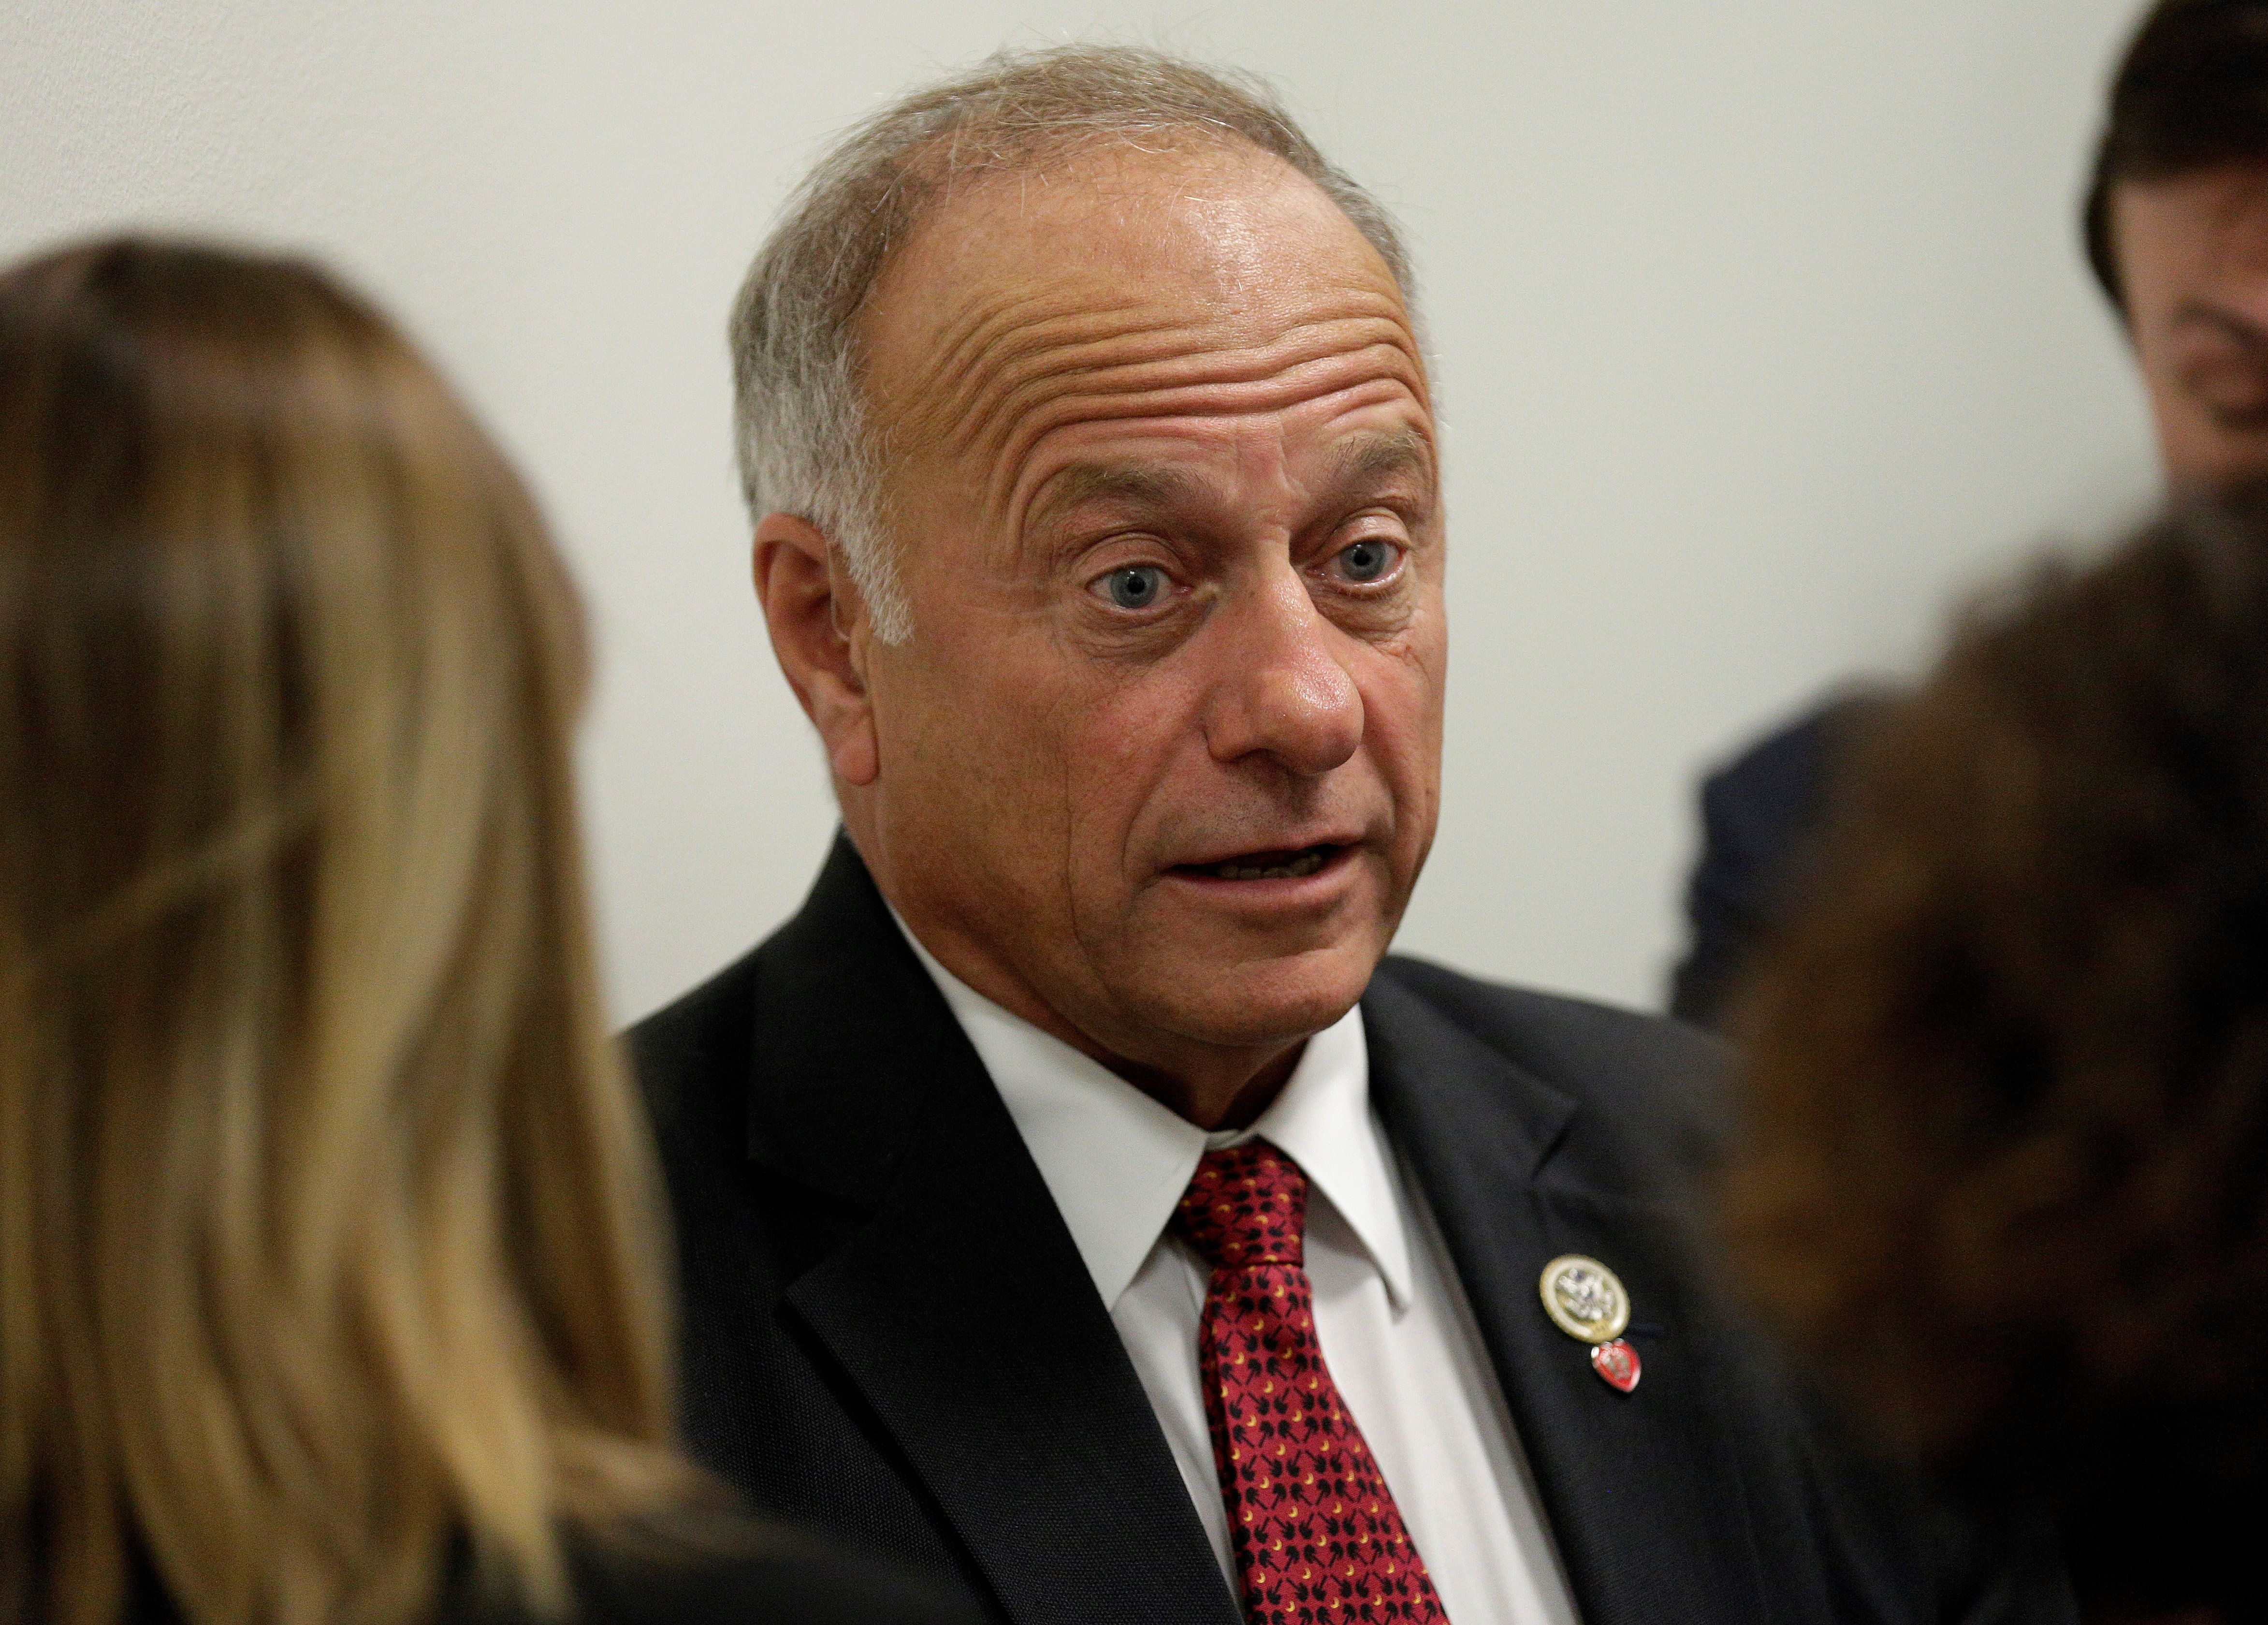 Rep. Steve King (R-IA) speaks to reporters about DACA and immigration legislation on Capitol Hill in Washington, U.S., September 6, 2017. REUTERS/Joshua Roberts